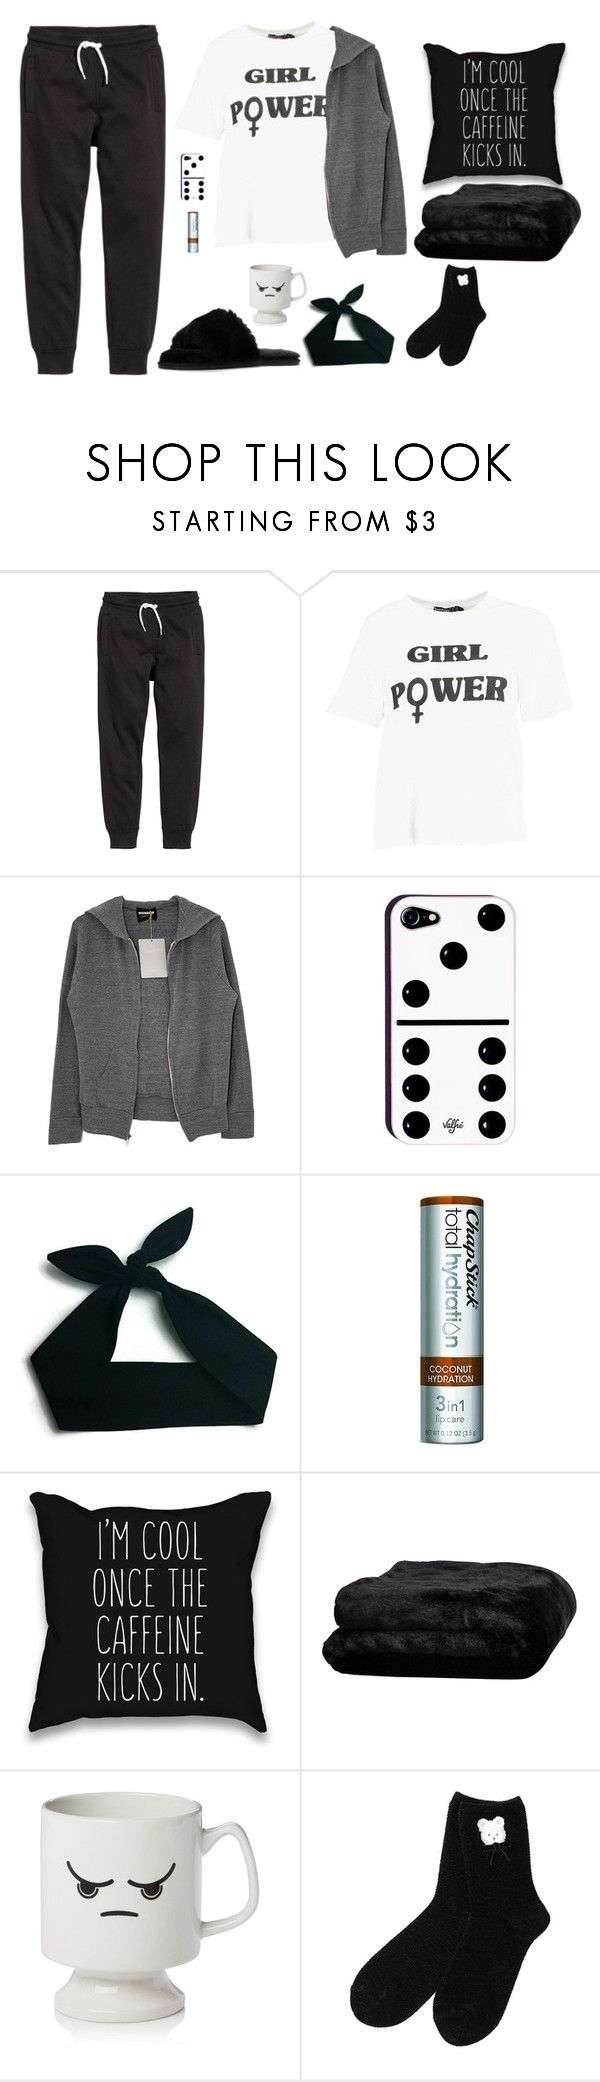 """i still love you and always will, all those motel rooms, you fronted the bill"" by nine-nine ❤ liked on Polyvore featuring H&M, Boohoo, Monrow, Chapstick, Olivier Desforges and Sparrow & Wren"